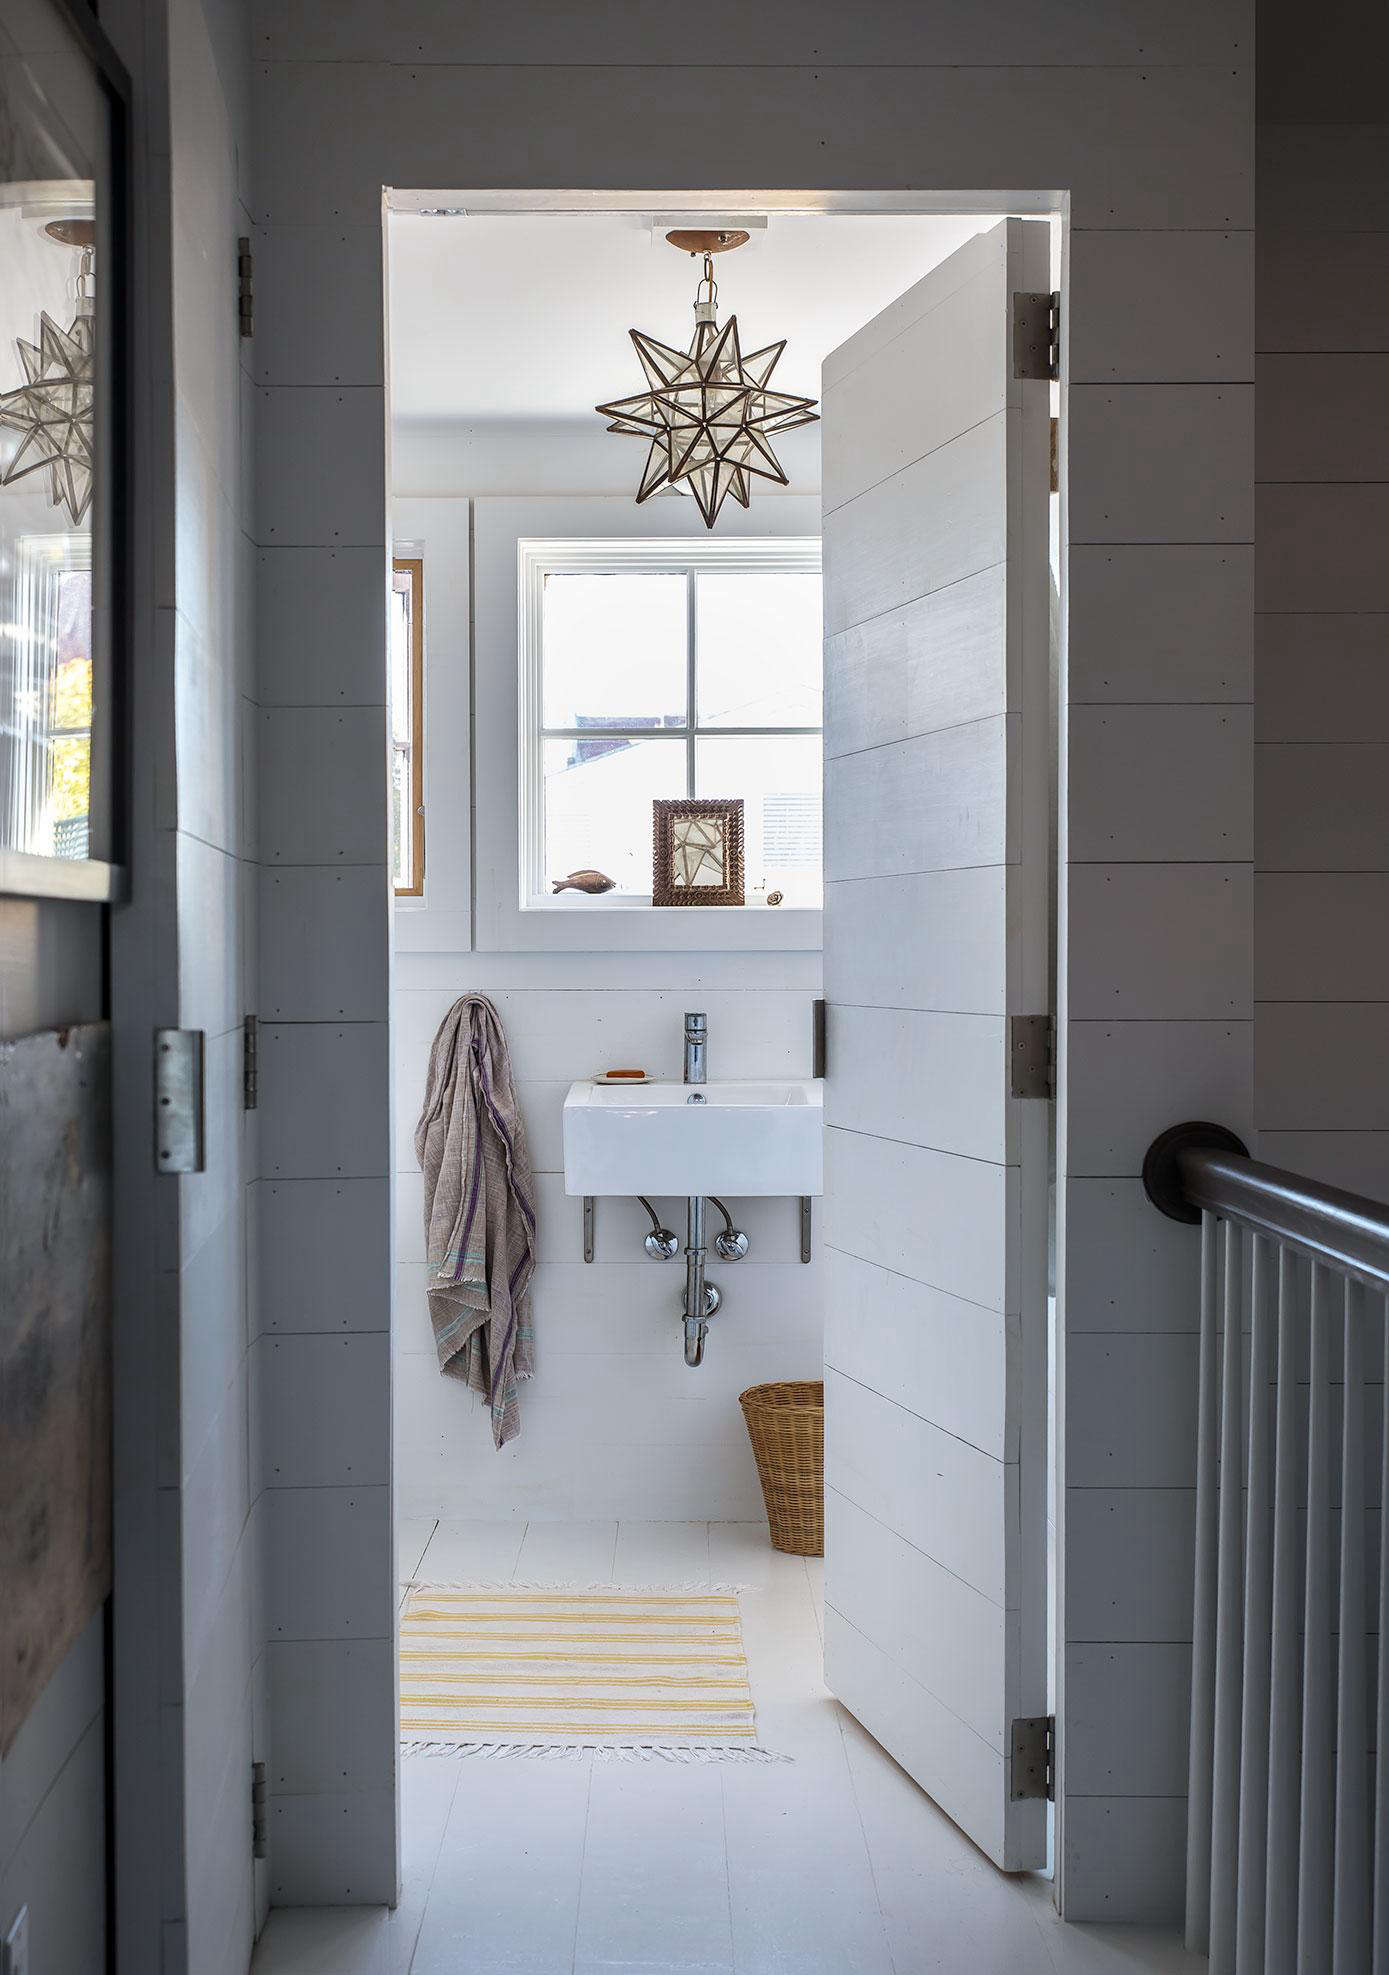 The bathroom and full upstairs studio are paneled with horizontal poplar Trim Boards from WindsorOne for a shiplap effect. Photograph by Justine Hand fromLiving Above the Shop: Ceramic Artist Paula Greif in Hudson, NY.